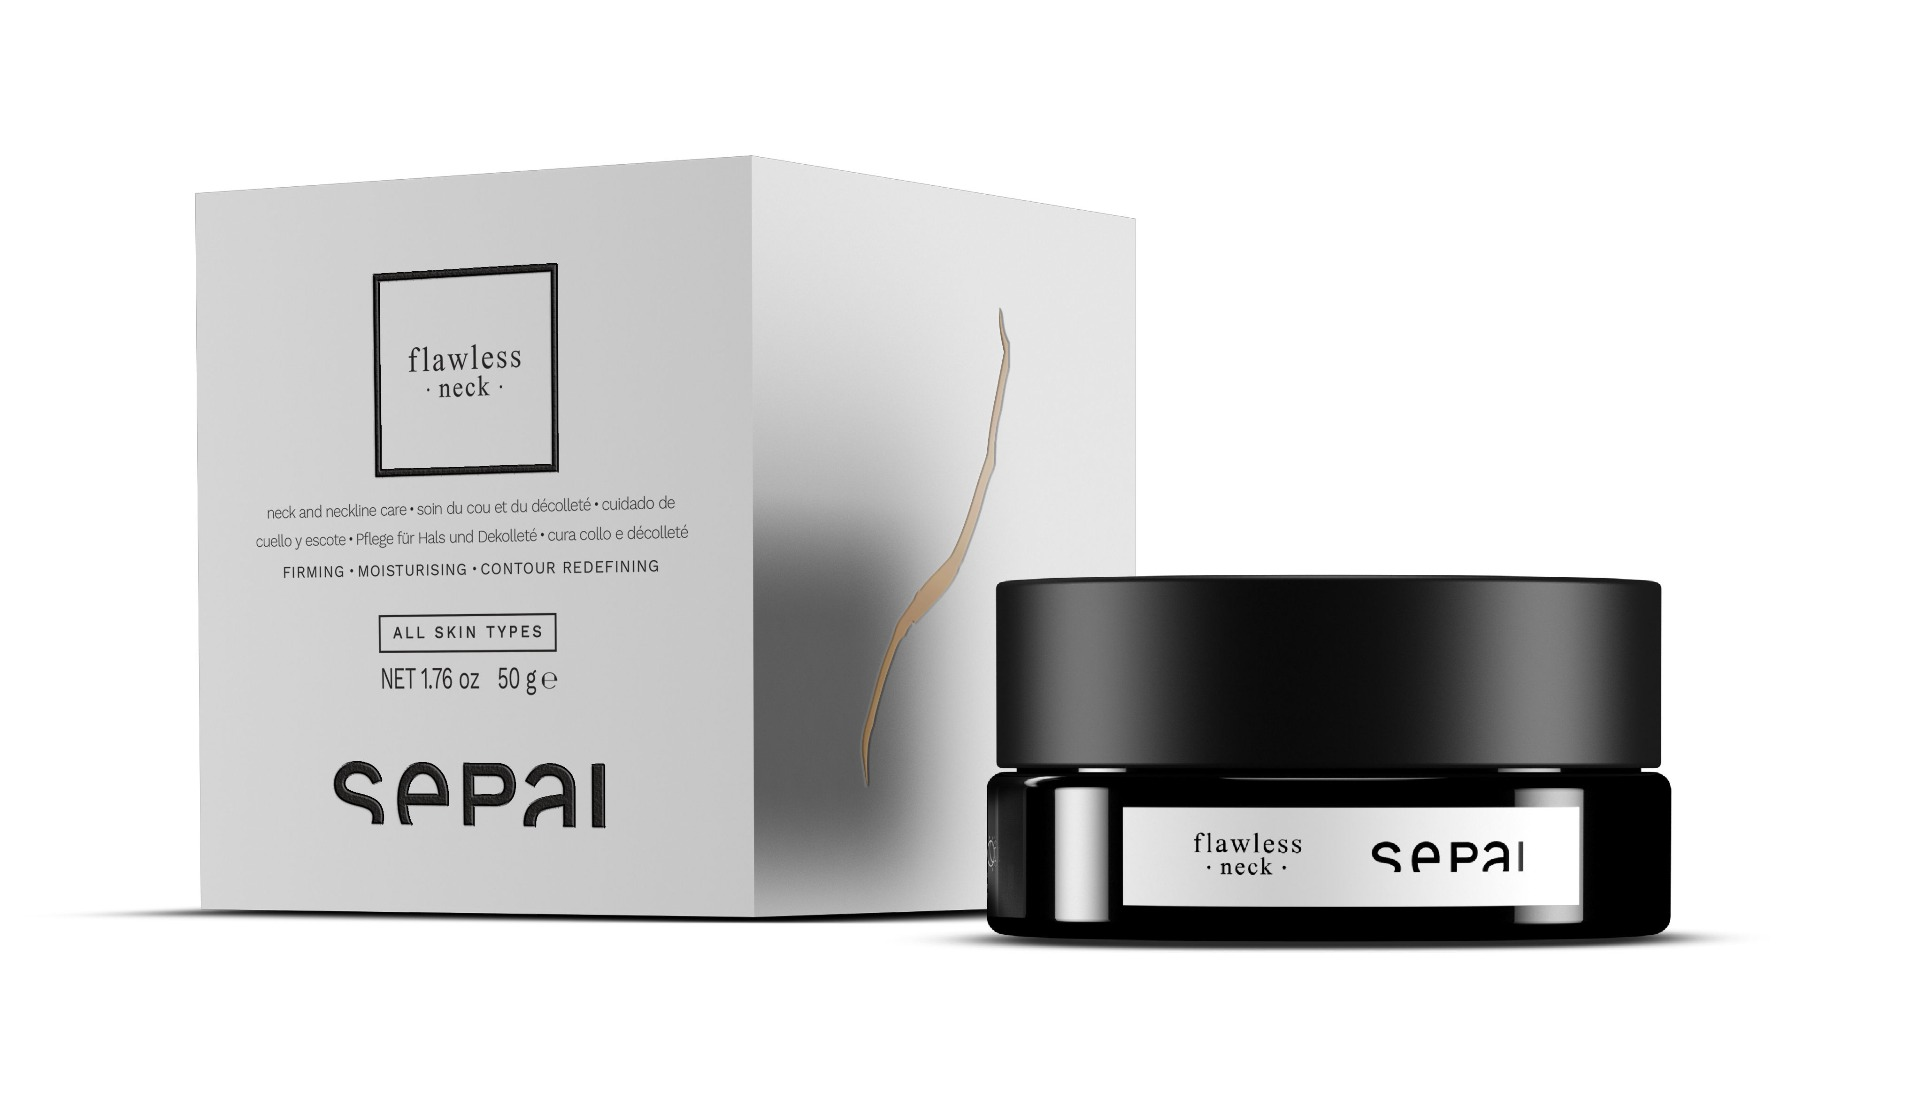 Sepai - Flawless Neck - Neck and Neckline Treatment - 50 g